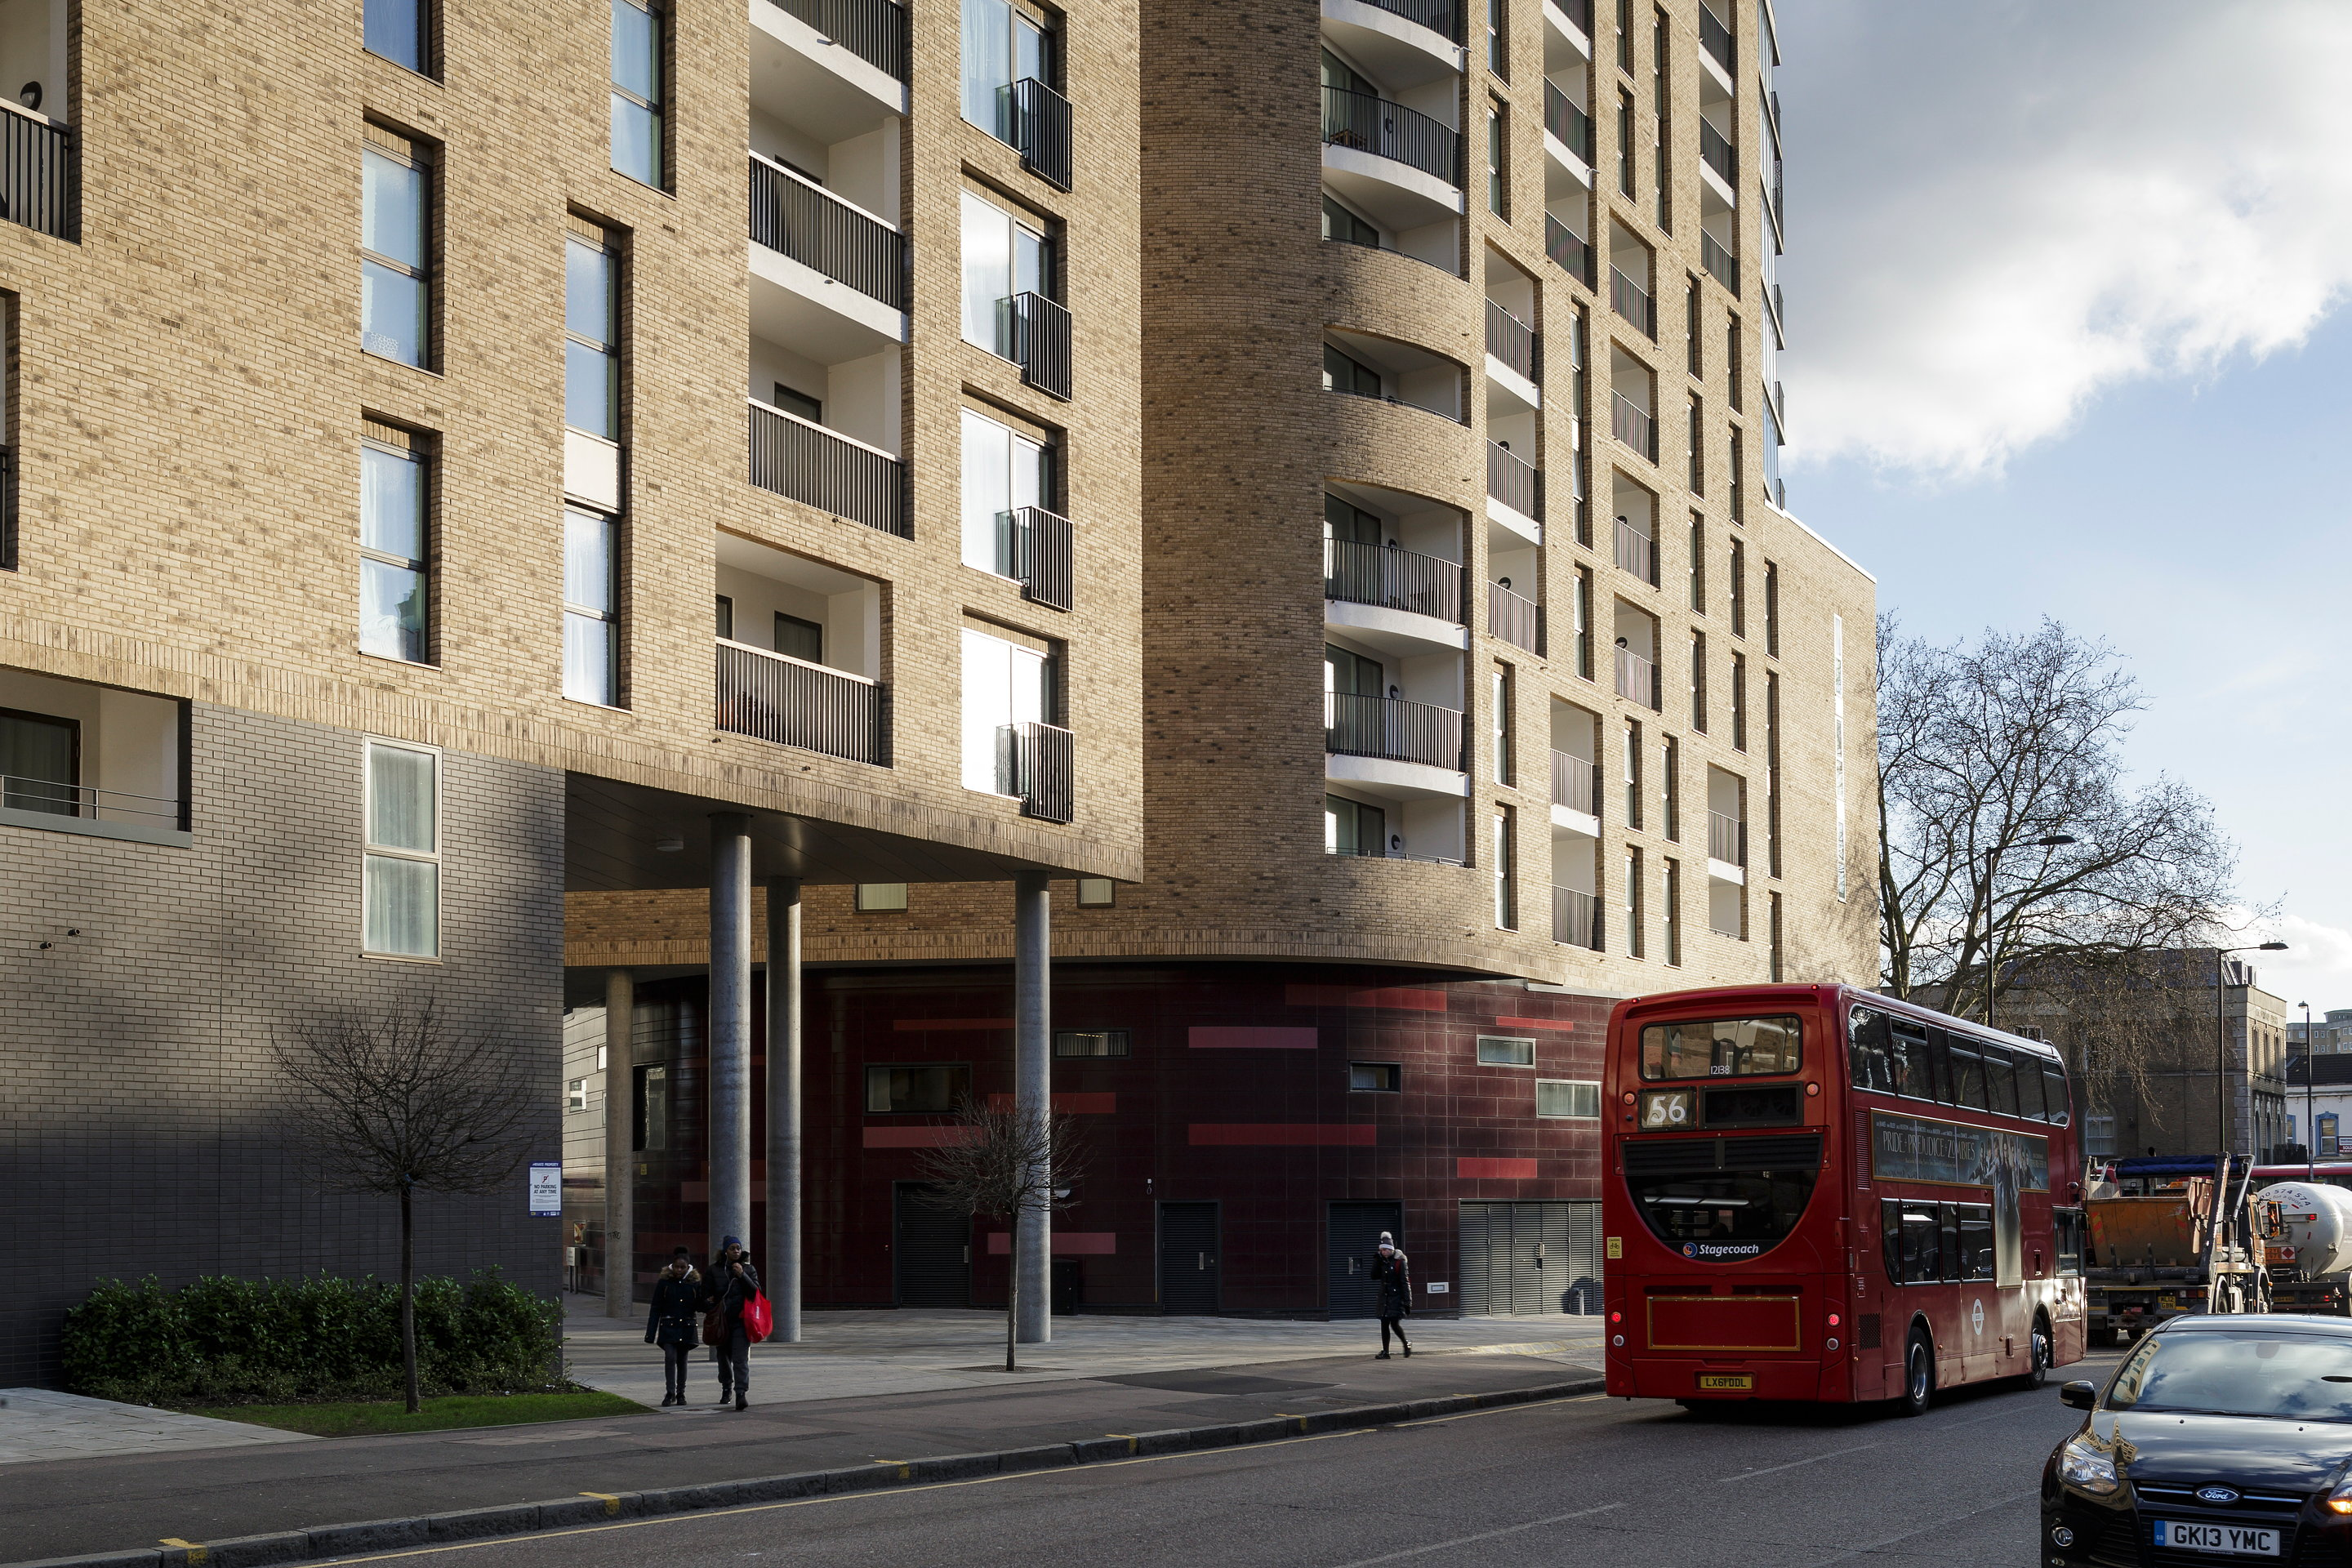 Pembury Circus Named Best Mixed Use Development at 2016 LEAF